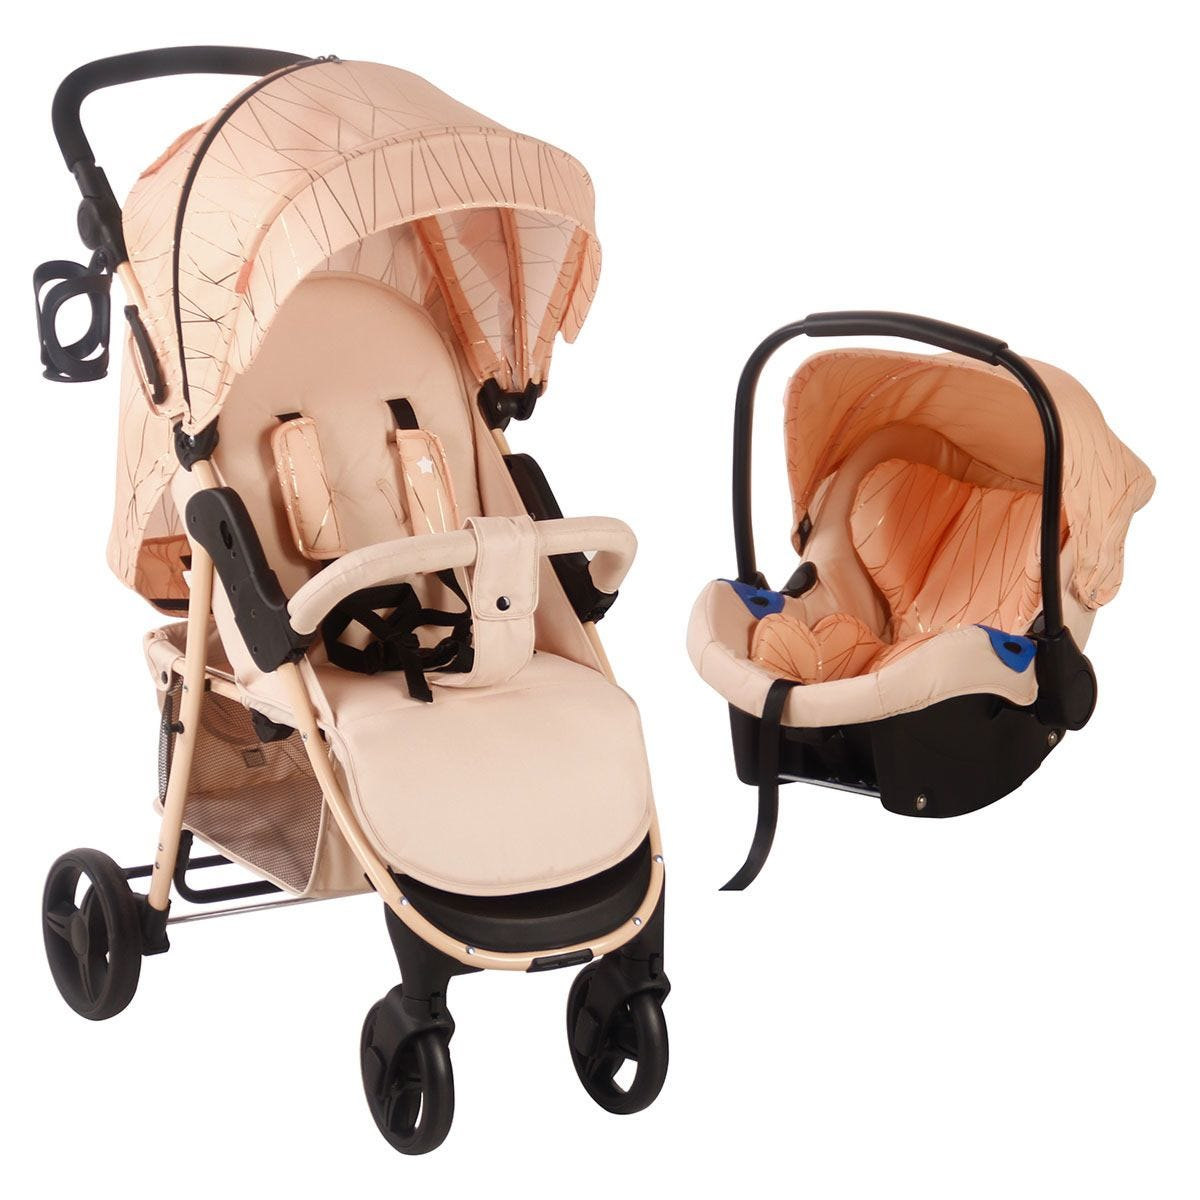 My Babiie MB30 Pushchair and Car Seat - Rose Gold Blush